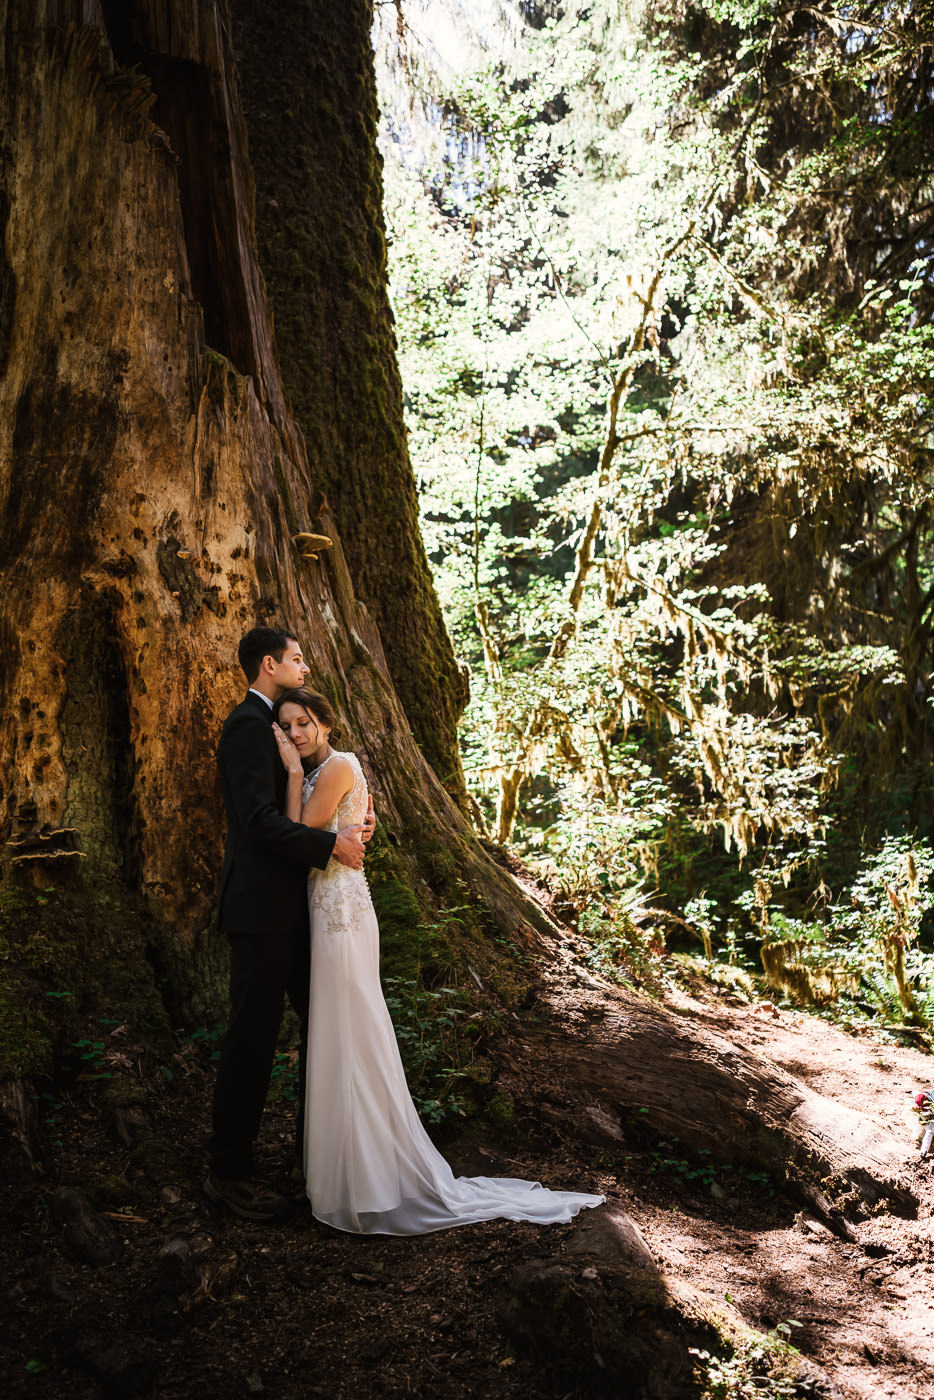 Lovers stand beneath a Giant cedar in a rainforest after their intimate wedding in the National Parks.